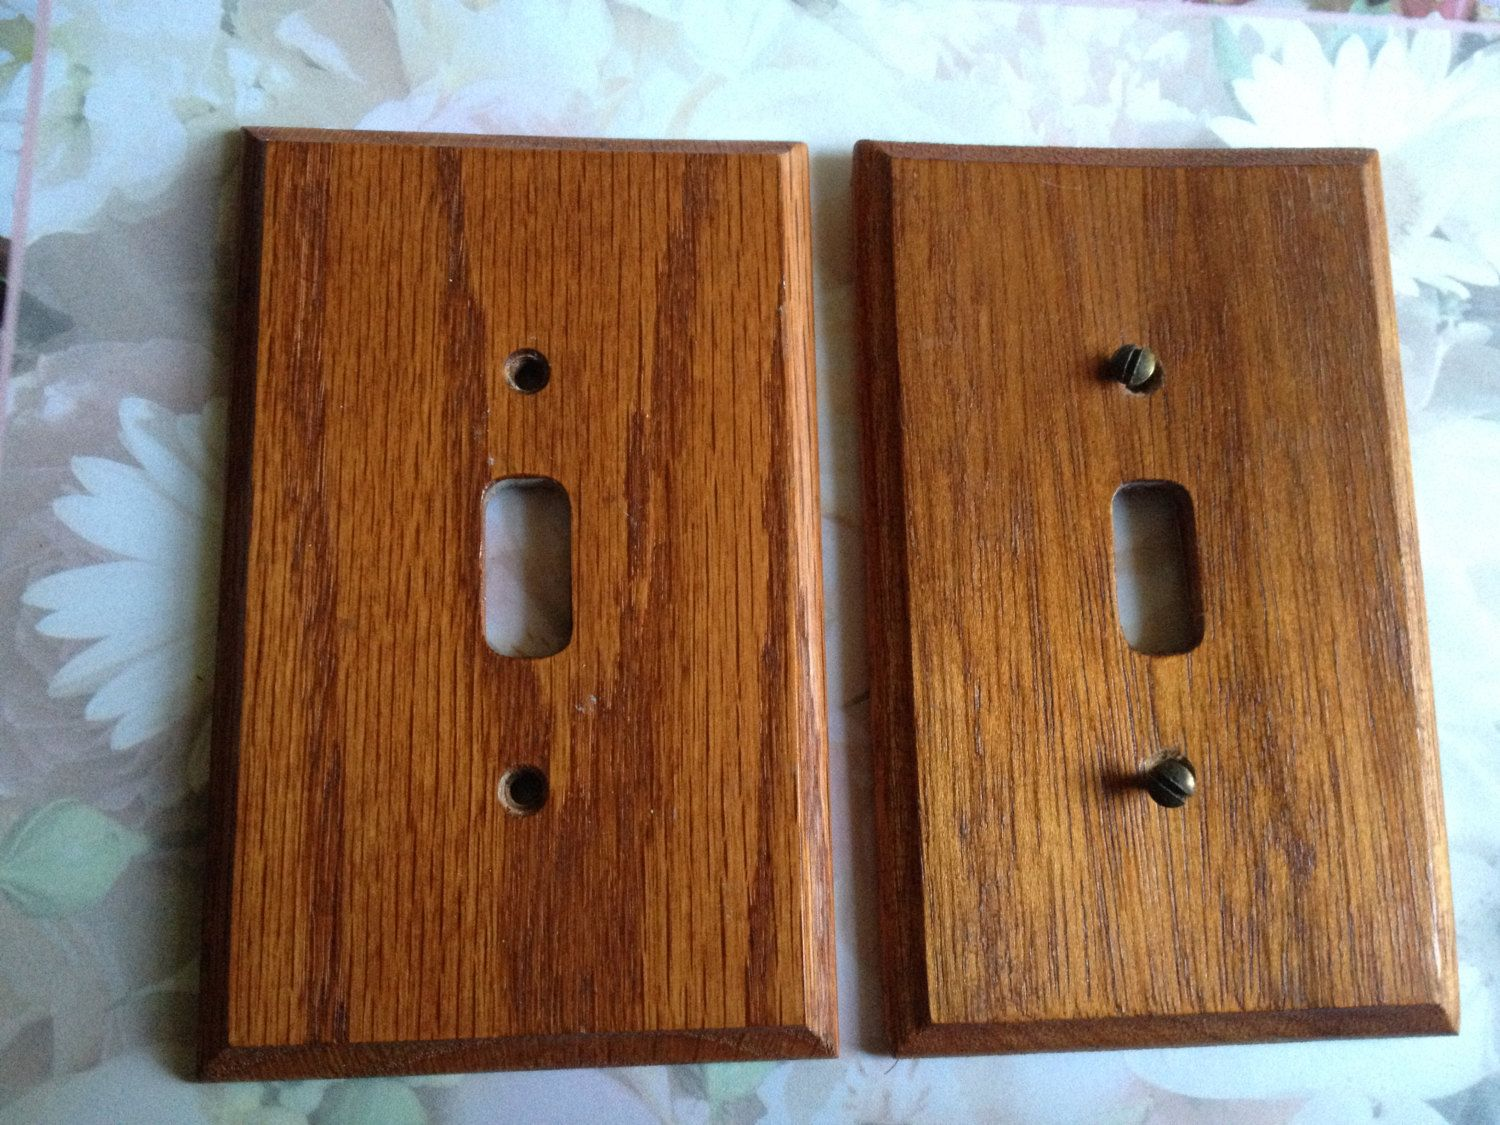 Light Switch Cover Plates Wood Vintage Cherry Retro